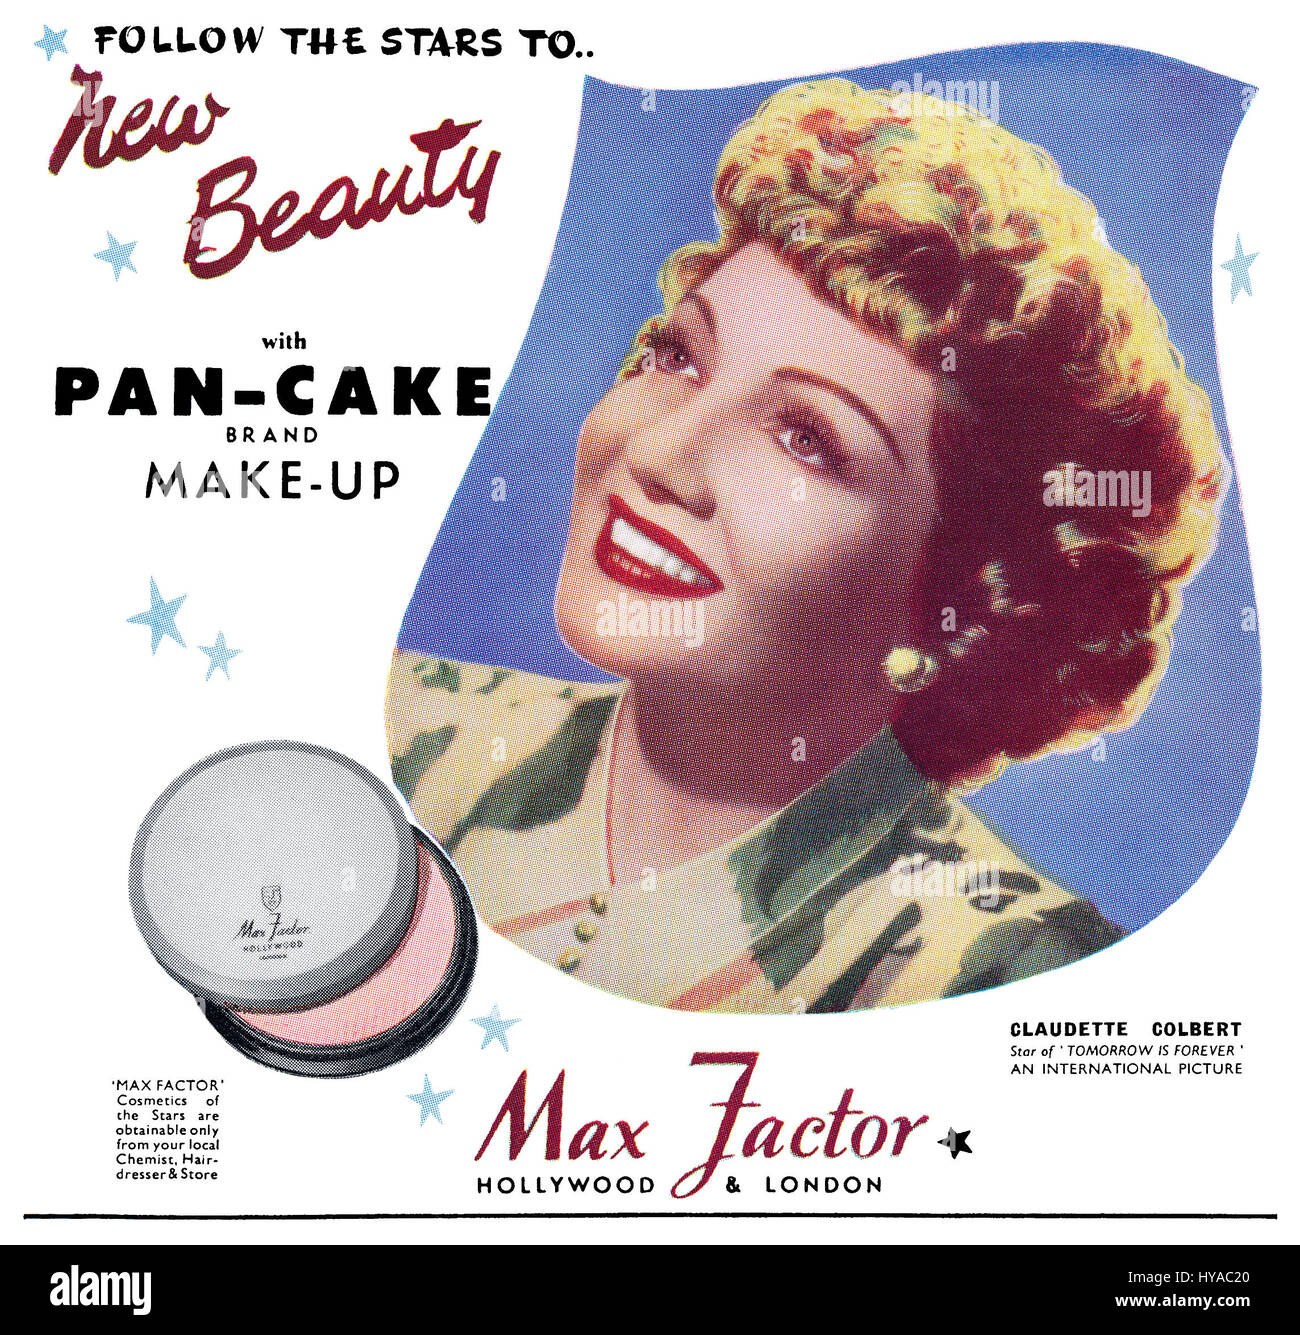 1946 British advertisement for Max Factor Pan-Cake Make-Up, featuring Hollywood actress Claudette Colbert. - Stock Image